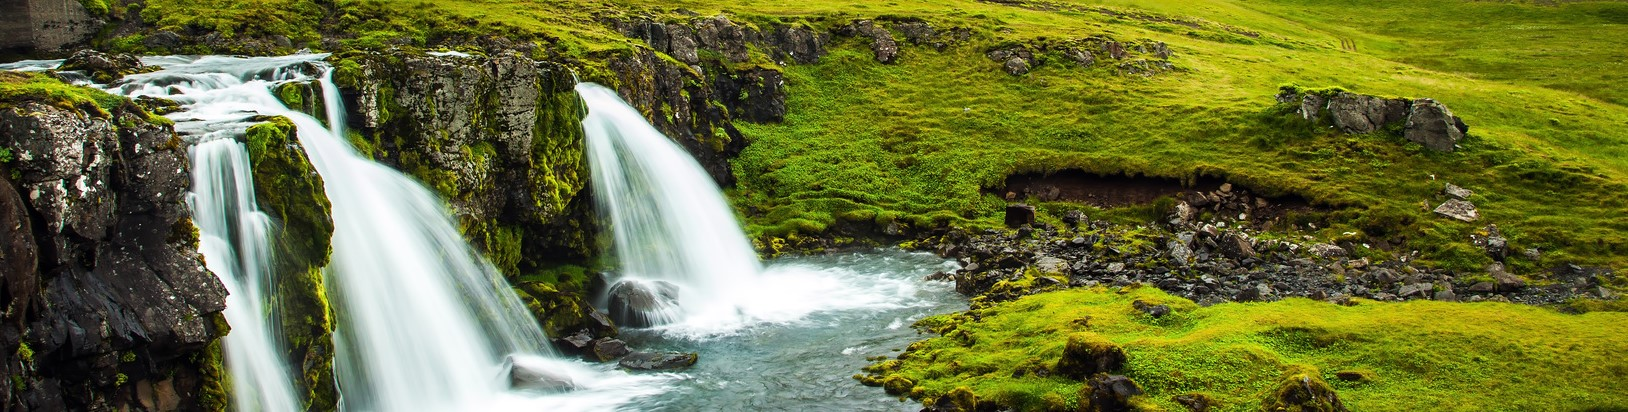 The most famous mountain in Iceland is Kirkjoufell. At the foot of the mountain cascading waterfalls Kirkjoufellfoss. The concept of exotic and extreme tourism